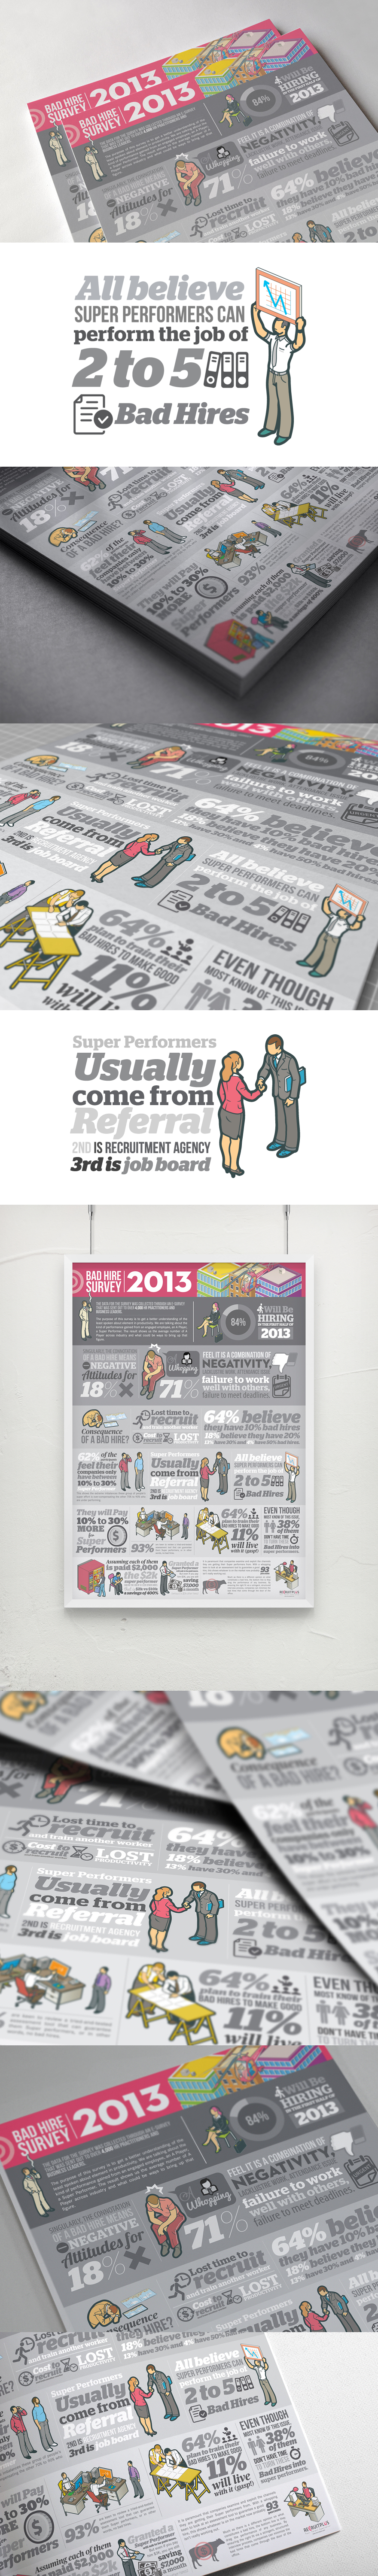 Bad Hire Survey 2013 // Infographic design - Infographics - Creattica